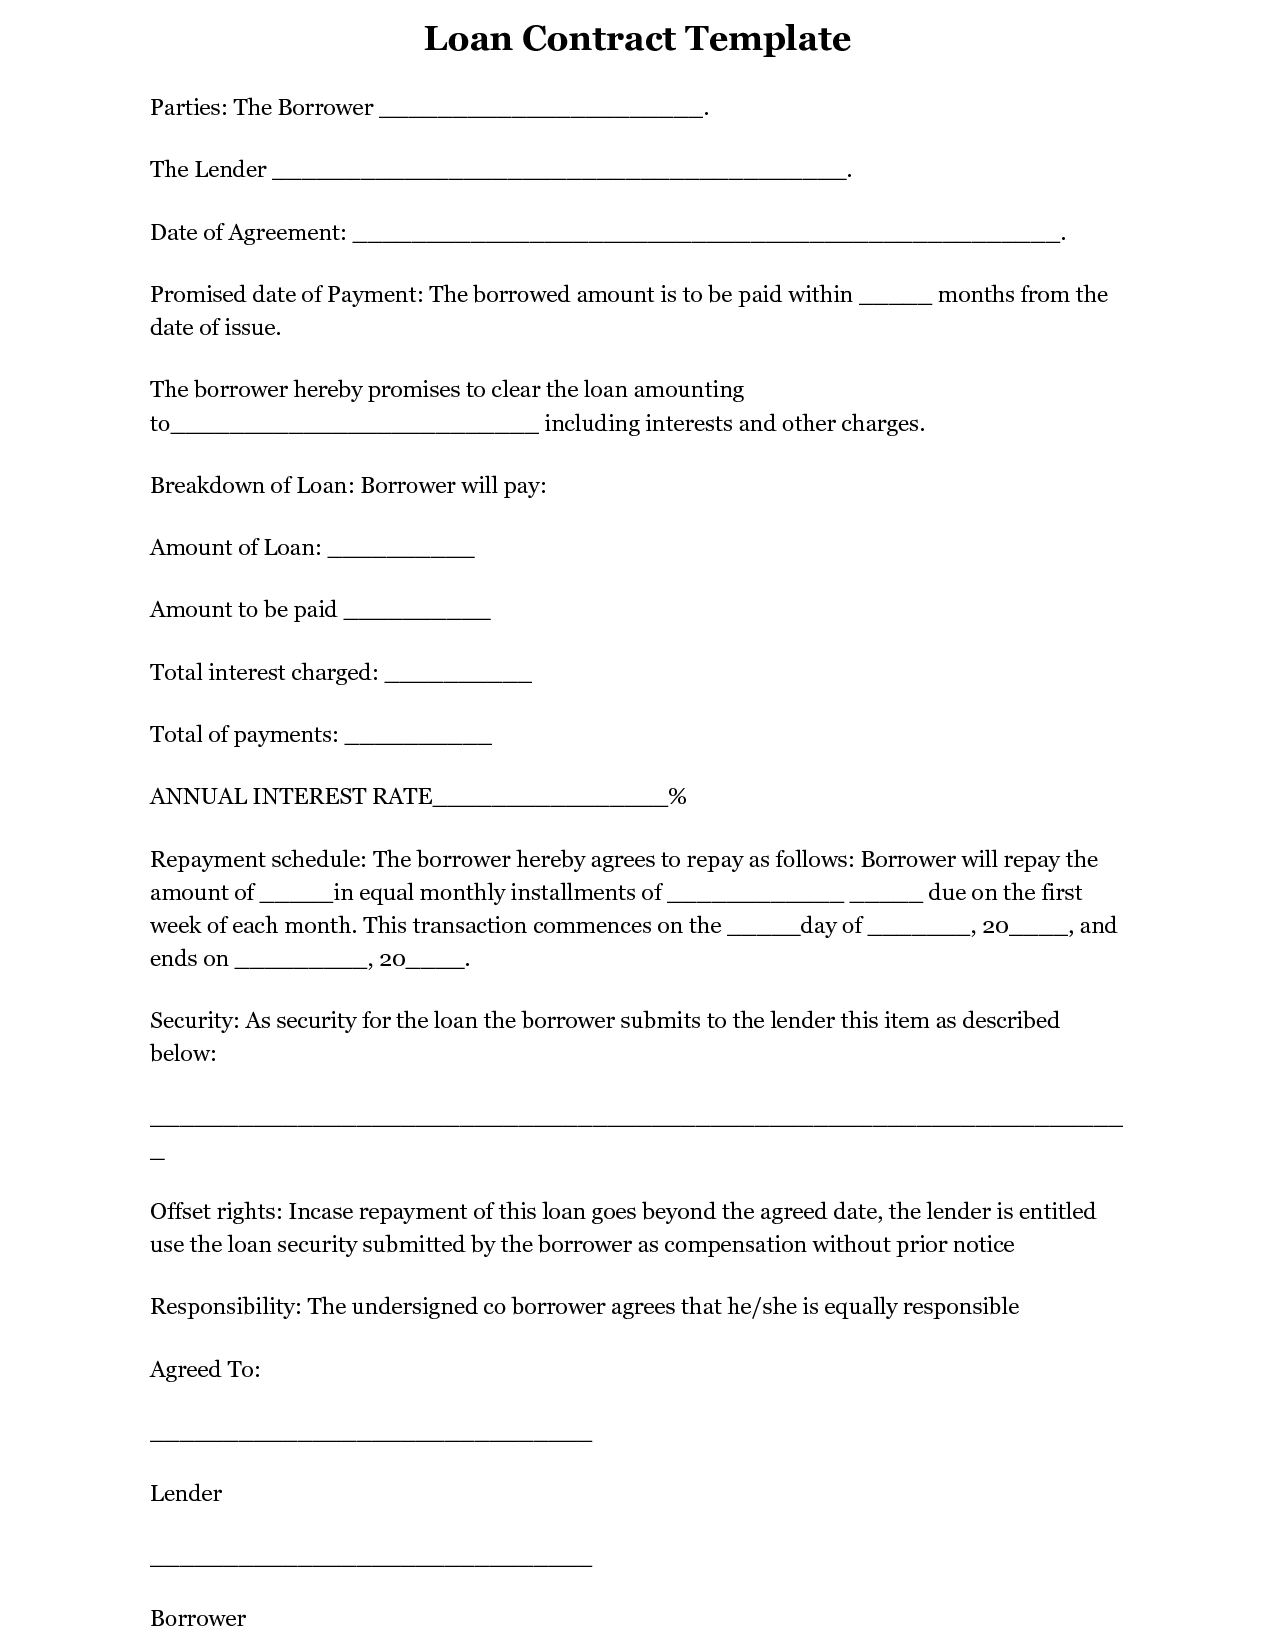 Attractive Simple Loan Agreement Form Free Loan Contract Template 26 Examples In Word  Pdf Free, Commercial Loan Agreement Template Loan Agreement Form Template,  ... To Free Loan Agreement Template